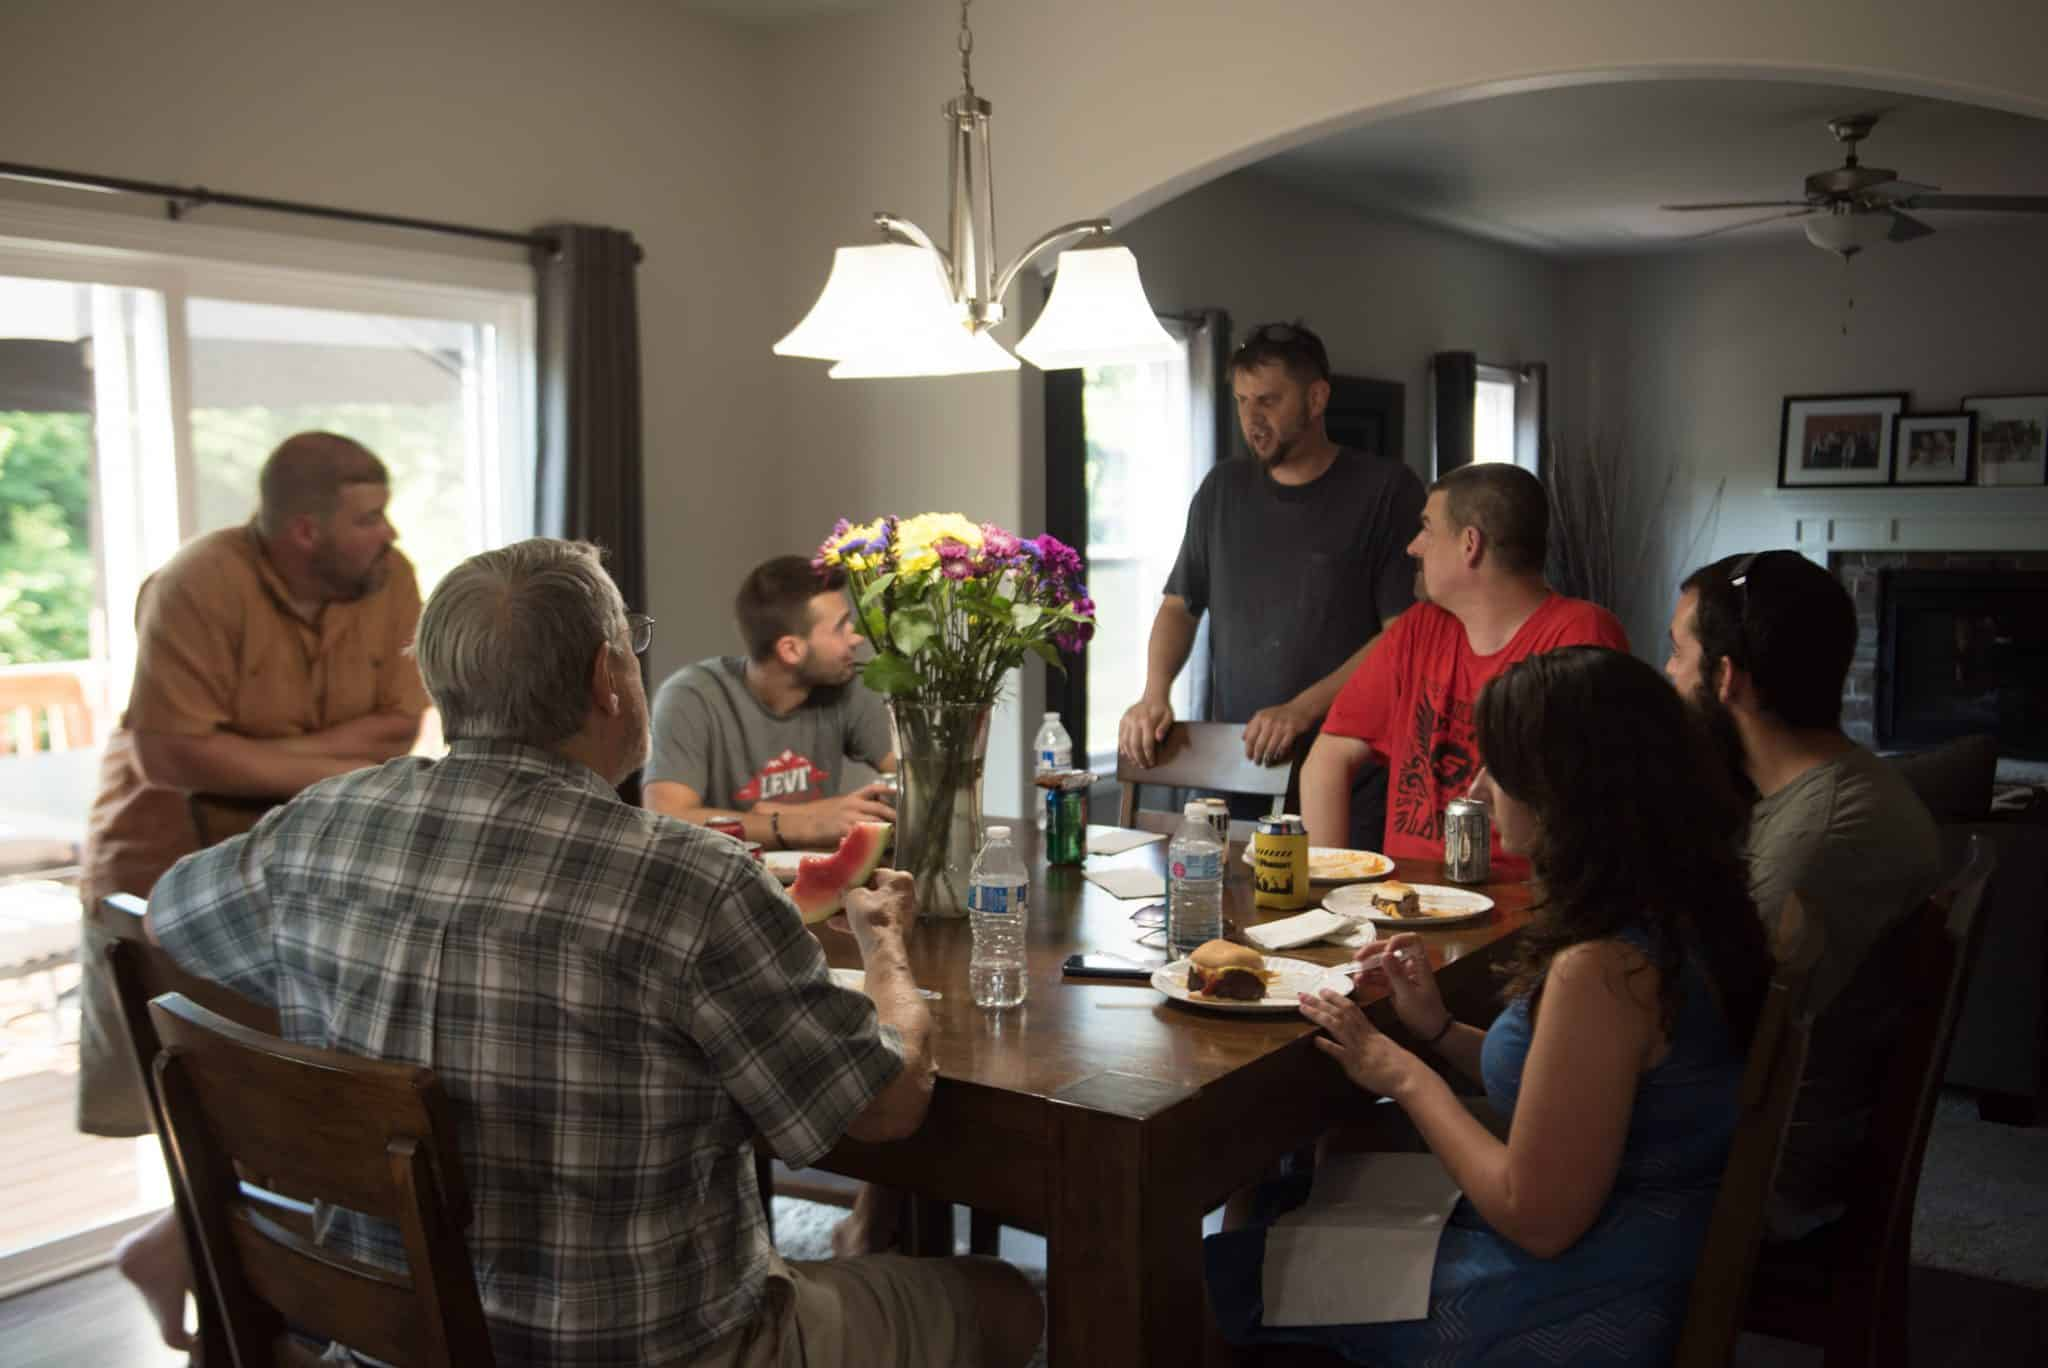 Apex employees and family members chatting at a dinner table